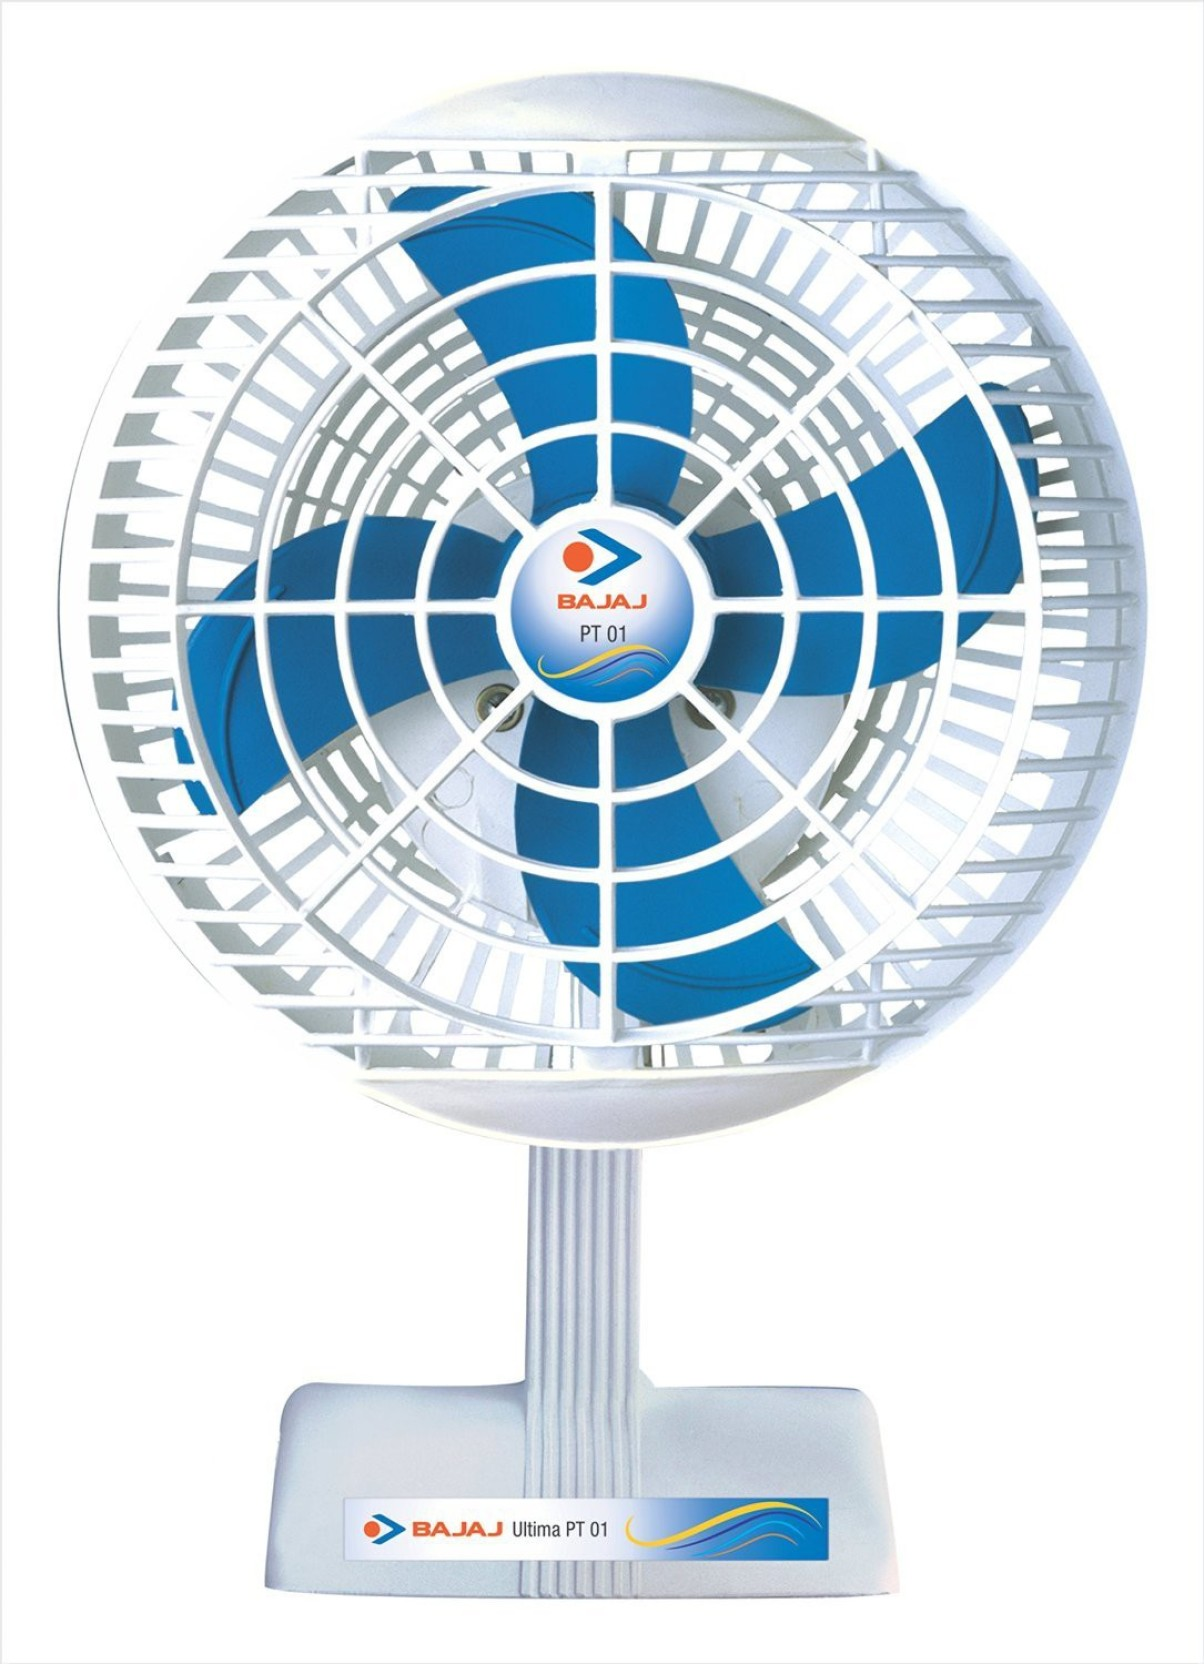 Bajaj Ultima Pt01 4 Blade Table Fan Price In India Buy